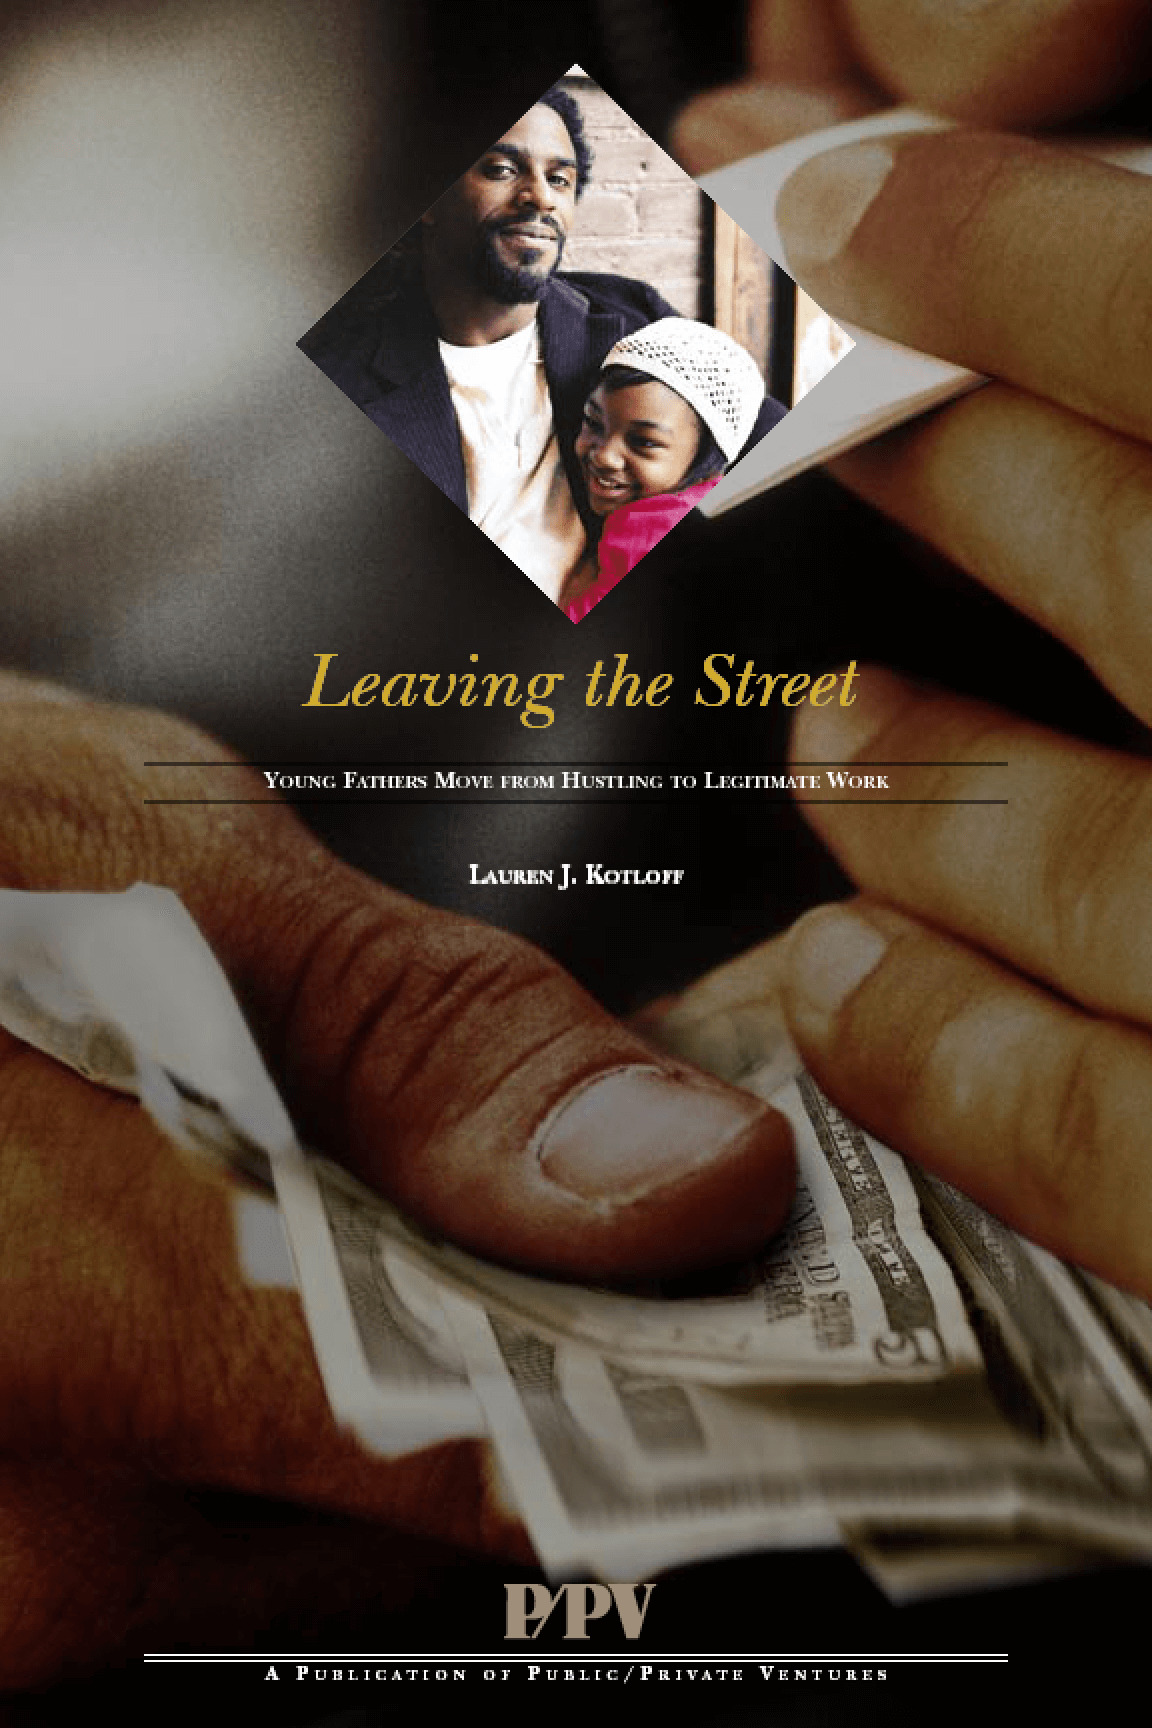 Leaving the Street: Young Fathers Move from Hustling to Legitimate Work